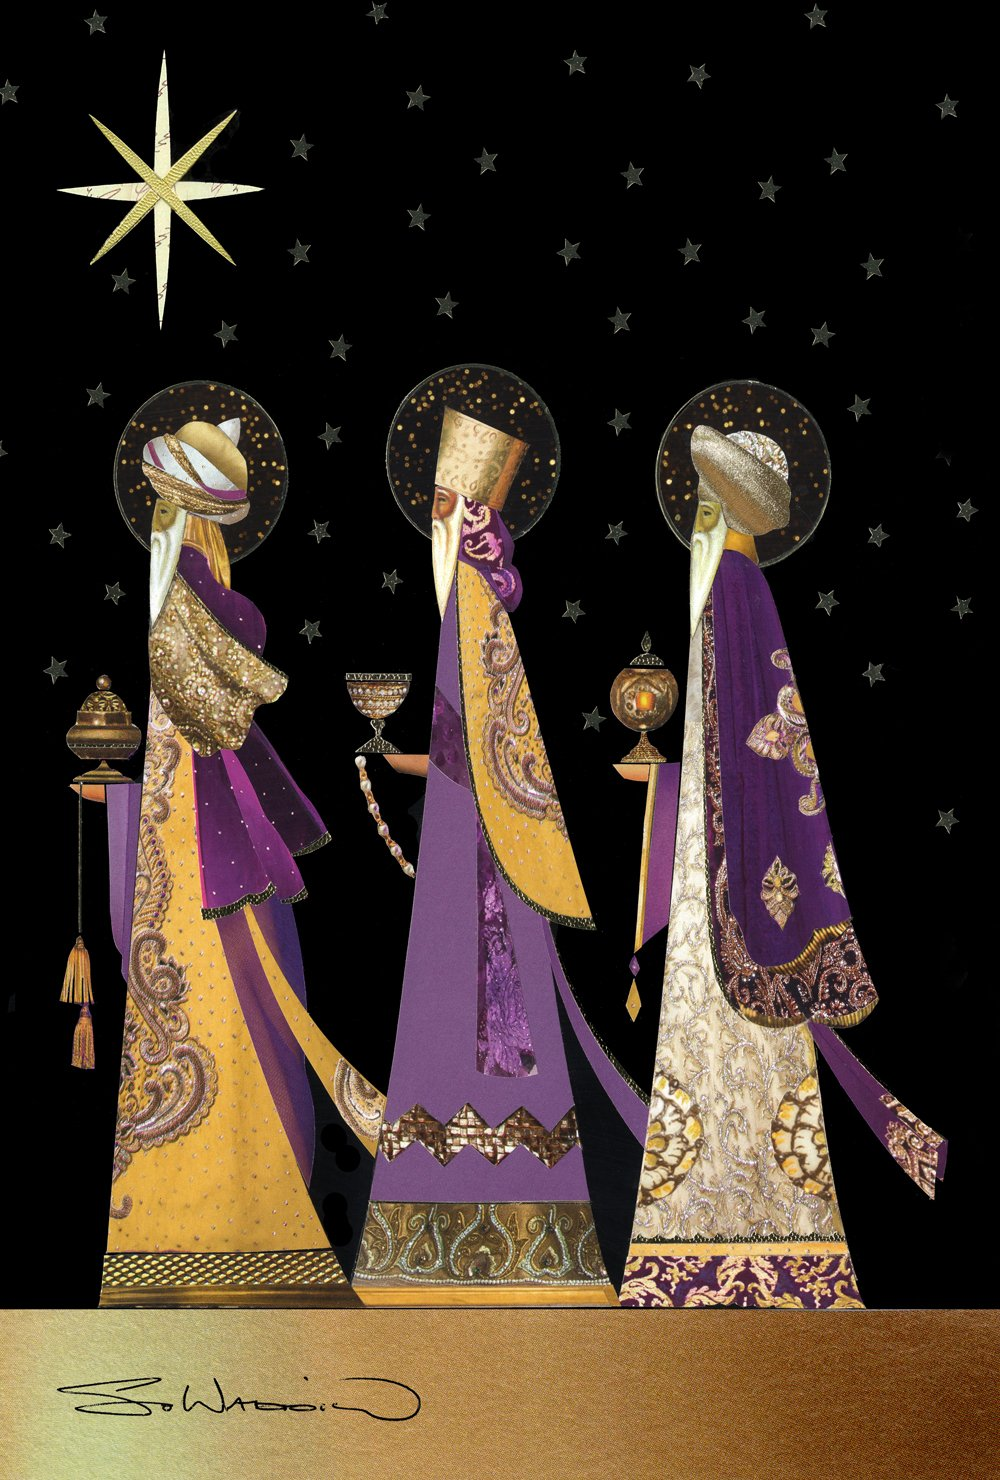 Toland Home Garden Three Wise Men 28 x 40 Inch Decorative Colorful Purple Gold Christmas Star Jesus Birth House Flag - 109724, Black/Gold/Purple/White/Brown